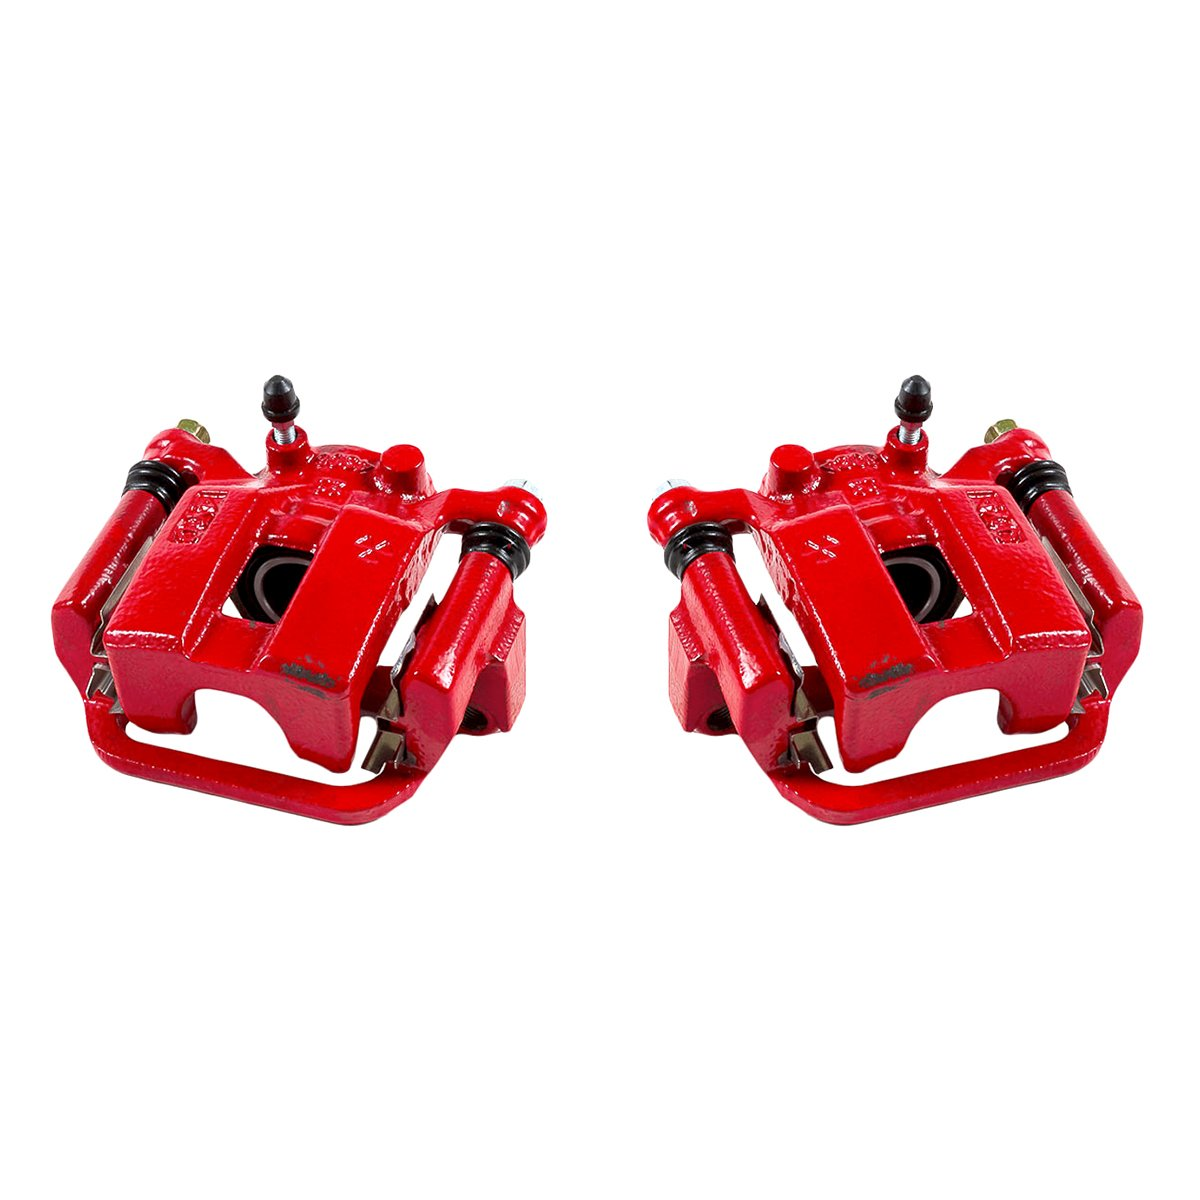 CK00947 [ 2 ] REAR Performance Grade Red Powder Coated Semi-Loaded Caliper Assembly Pair Set Callahan Brake Parts